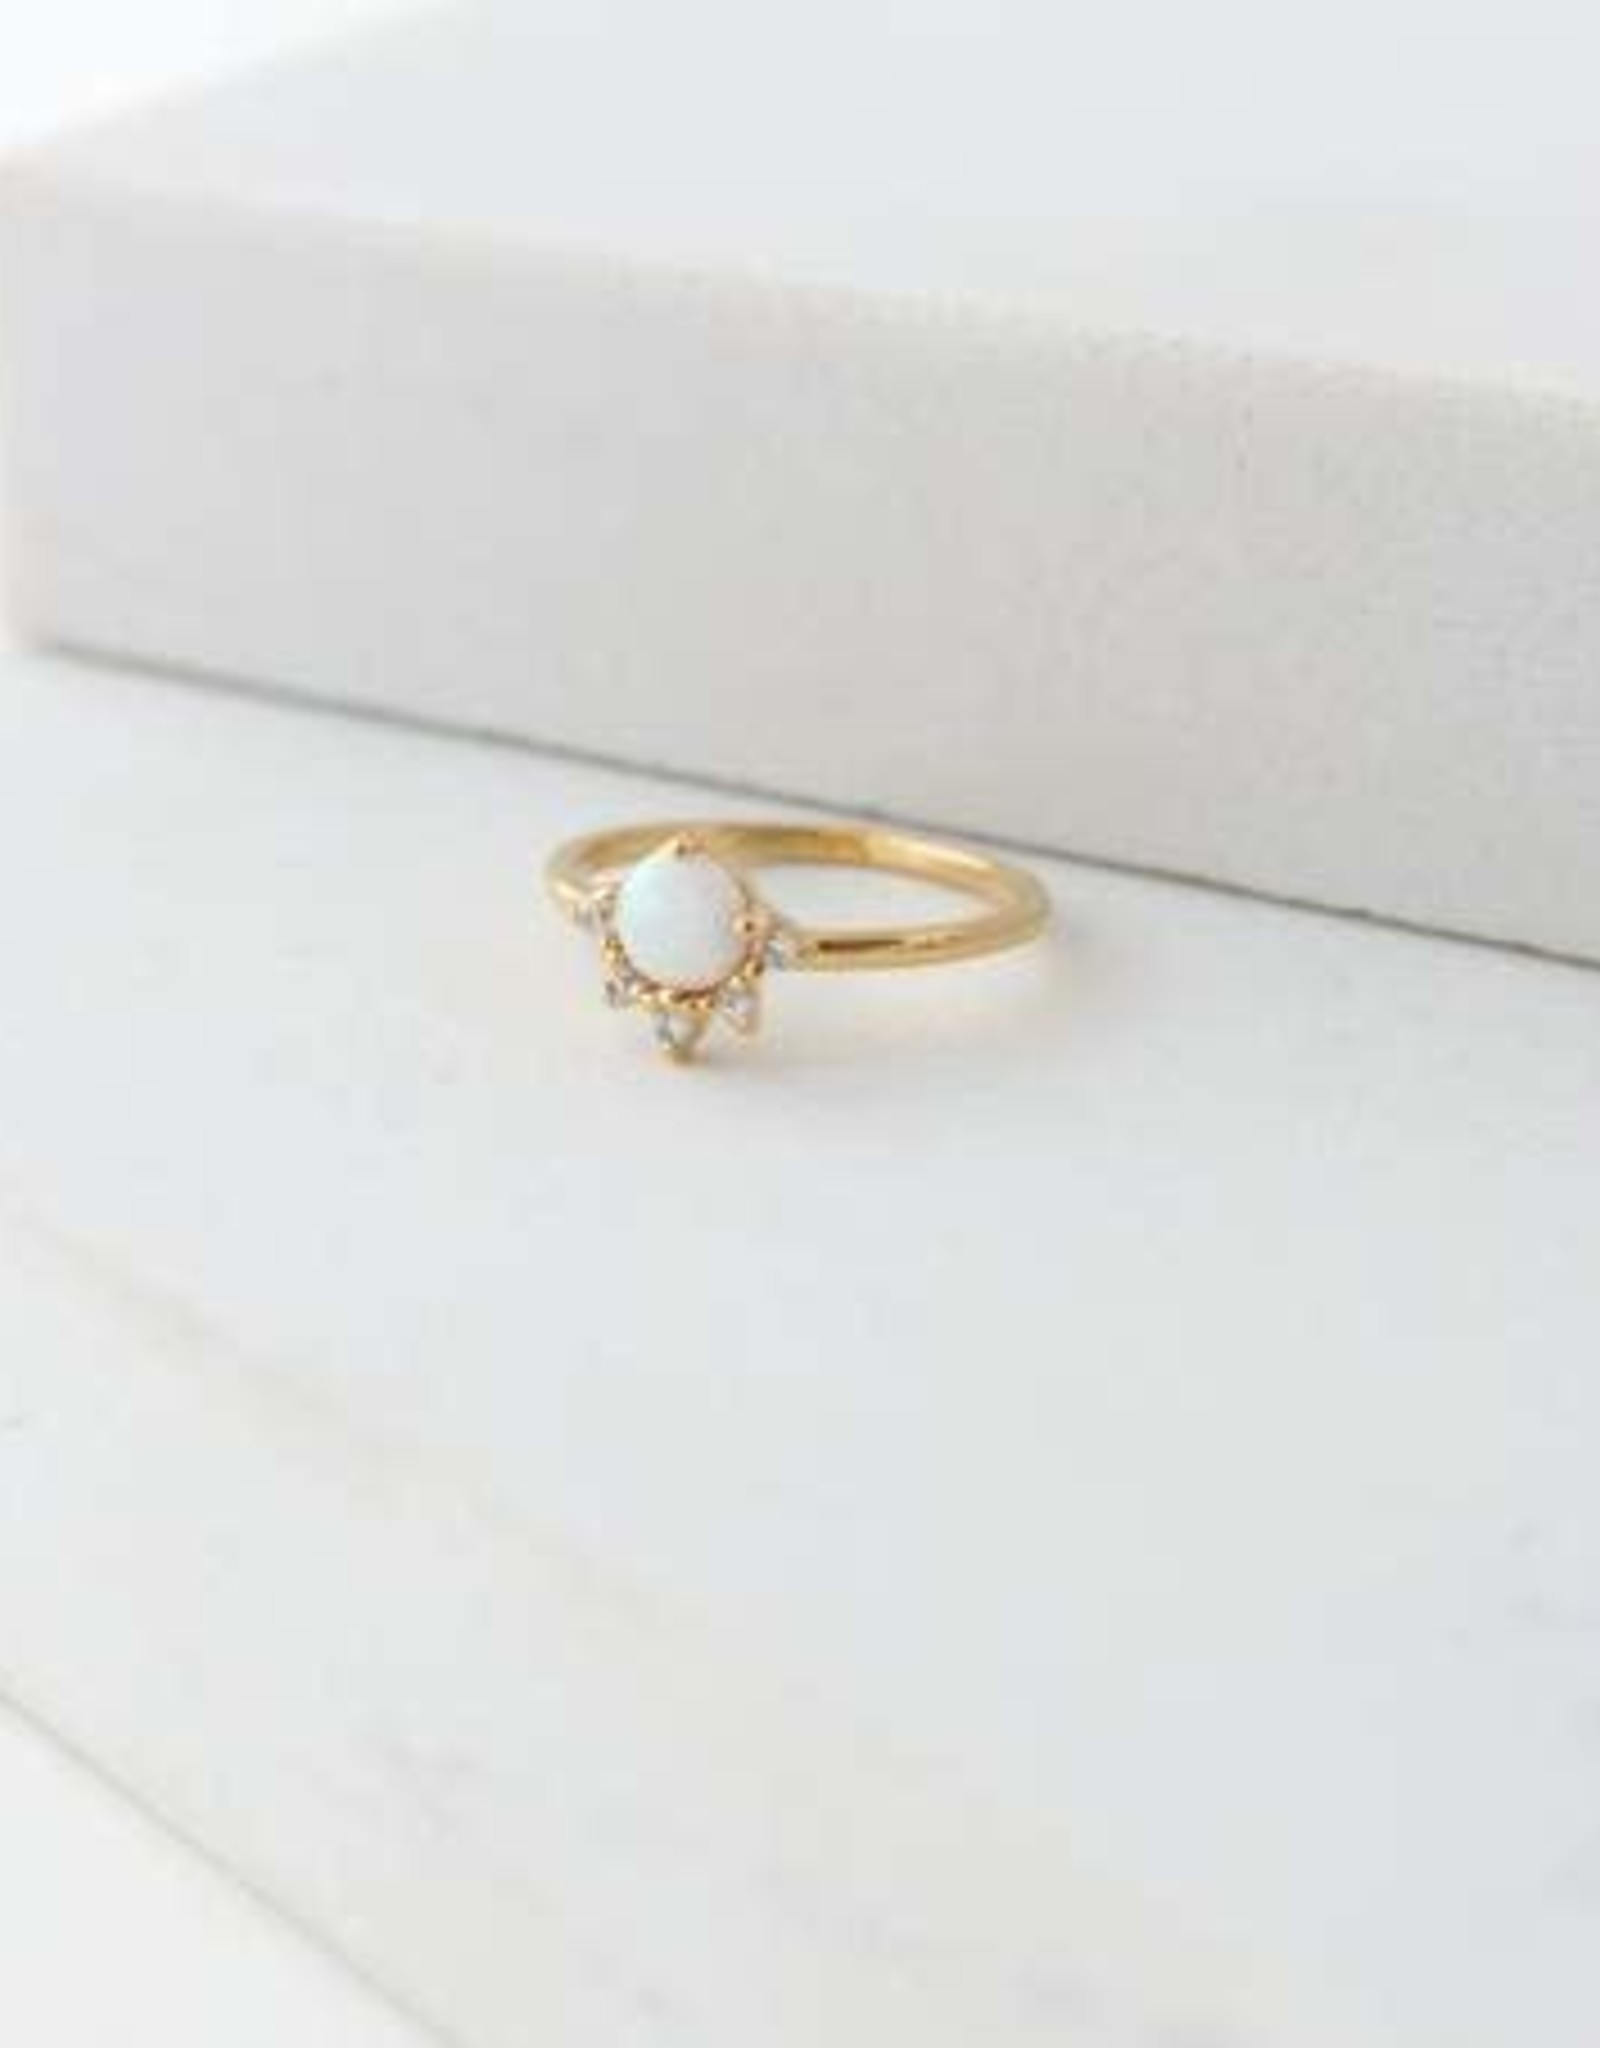 Ring, Juno-Gold/Opal-7 Gold-plated Brass, Cubic Zirconia, Simulated Opal